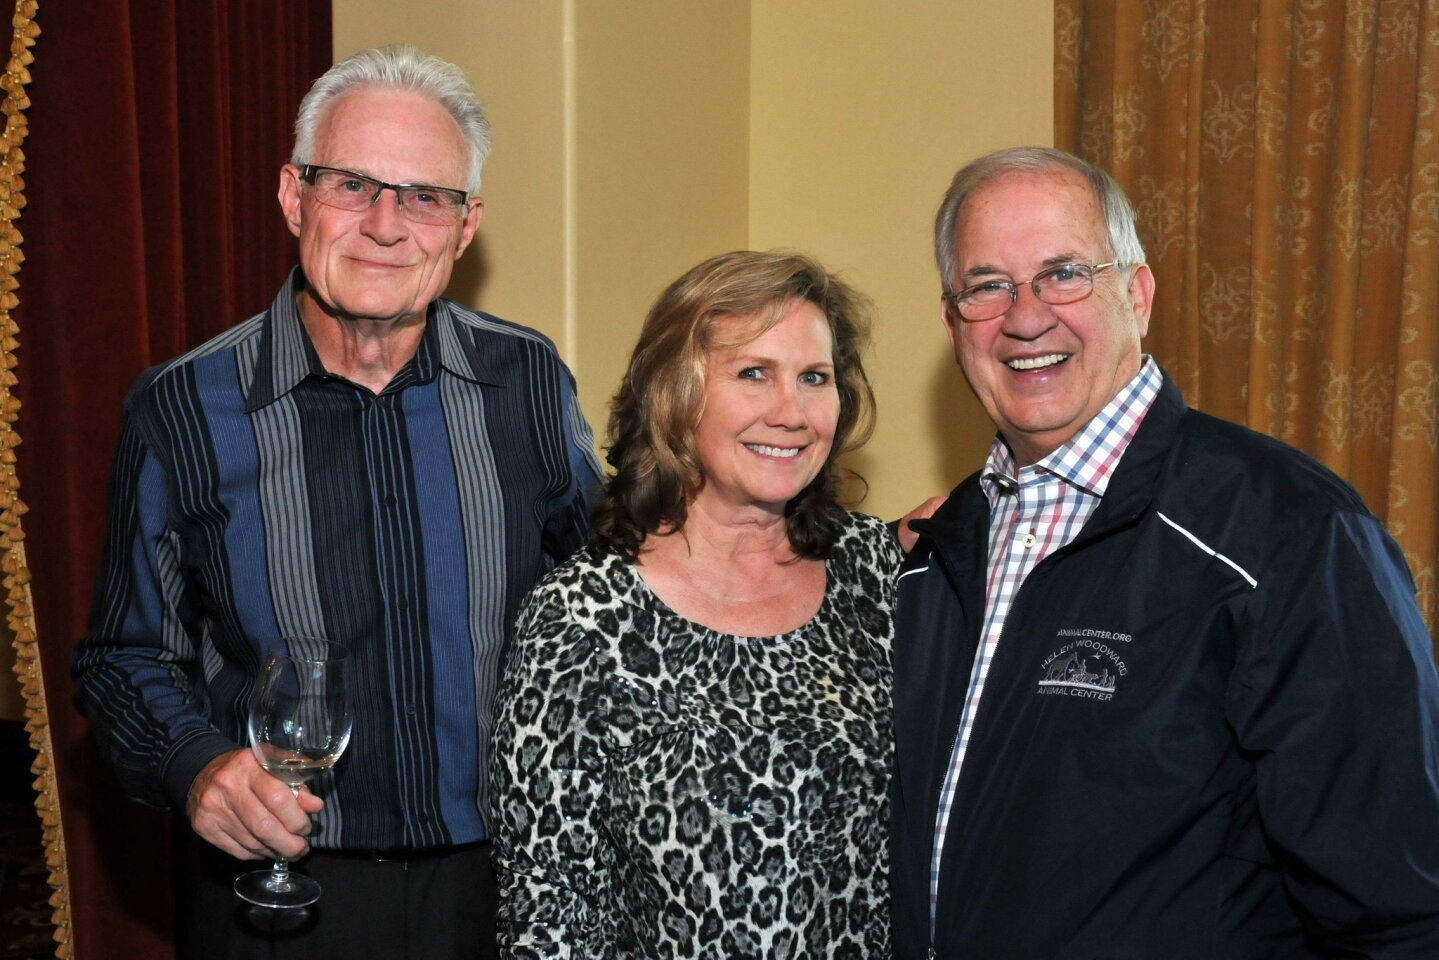 Jim Hooker (HWAC board), Ann Dizney (event chair; will also chair June 4 Spring Fling), Mike Arms (HWAC President/CEO)